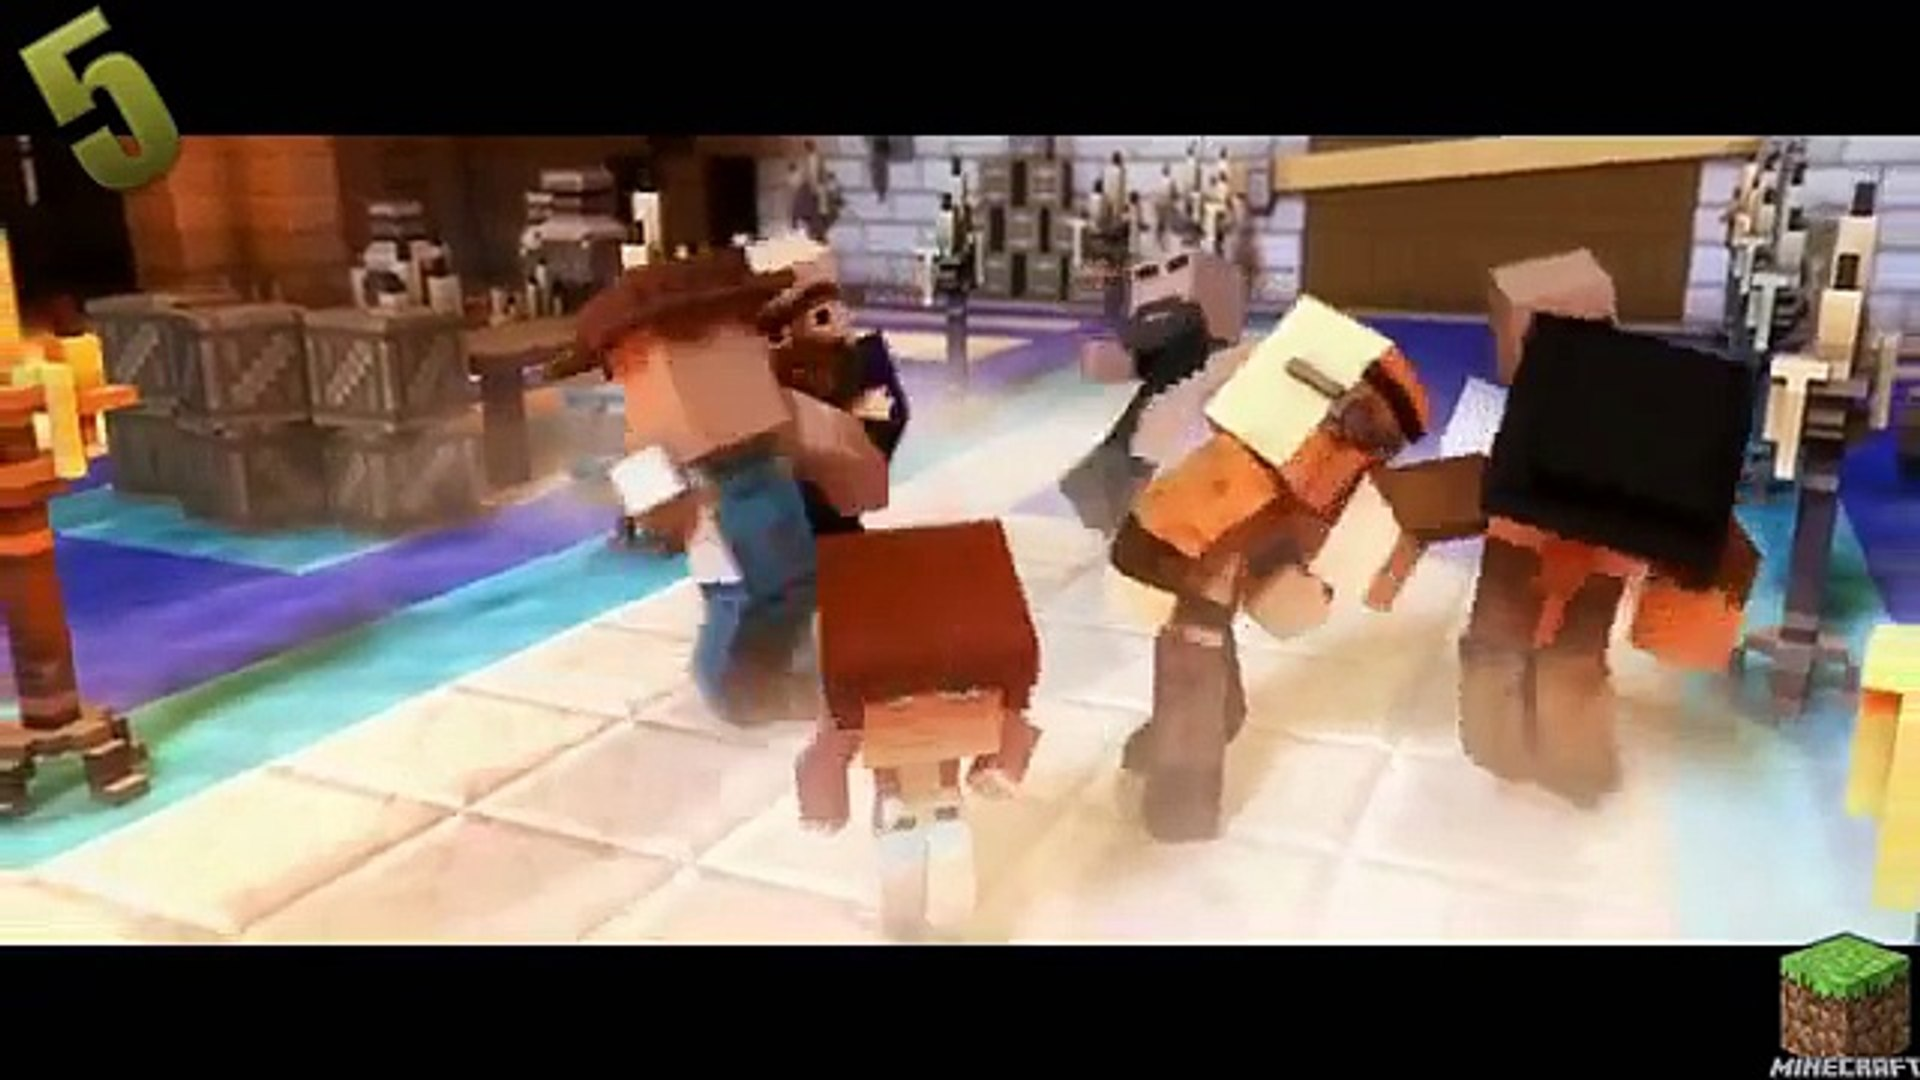 Top 5 Minecraft Song Parody July 2015 - Minecraft Songs Funny Animations Parodies